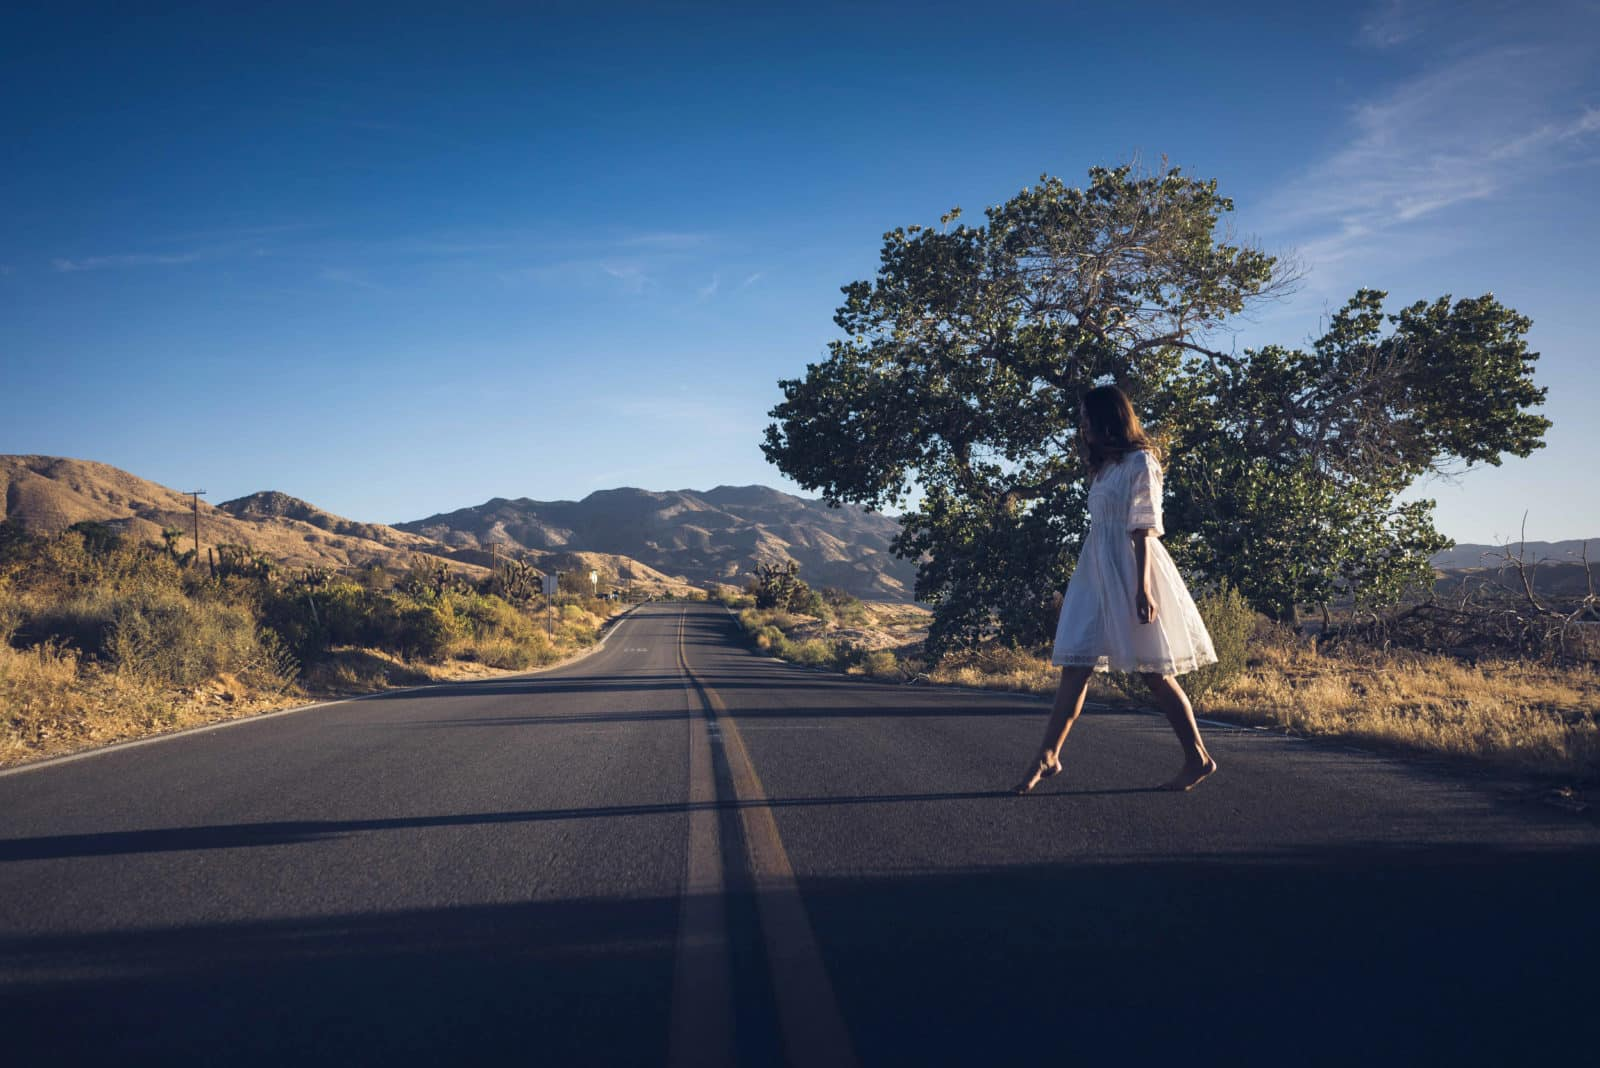 Girl walking across road